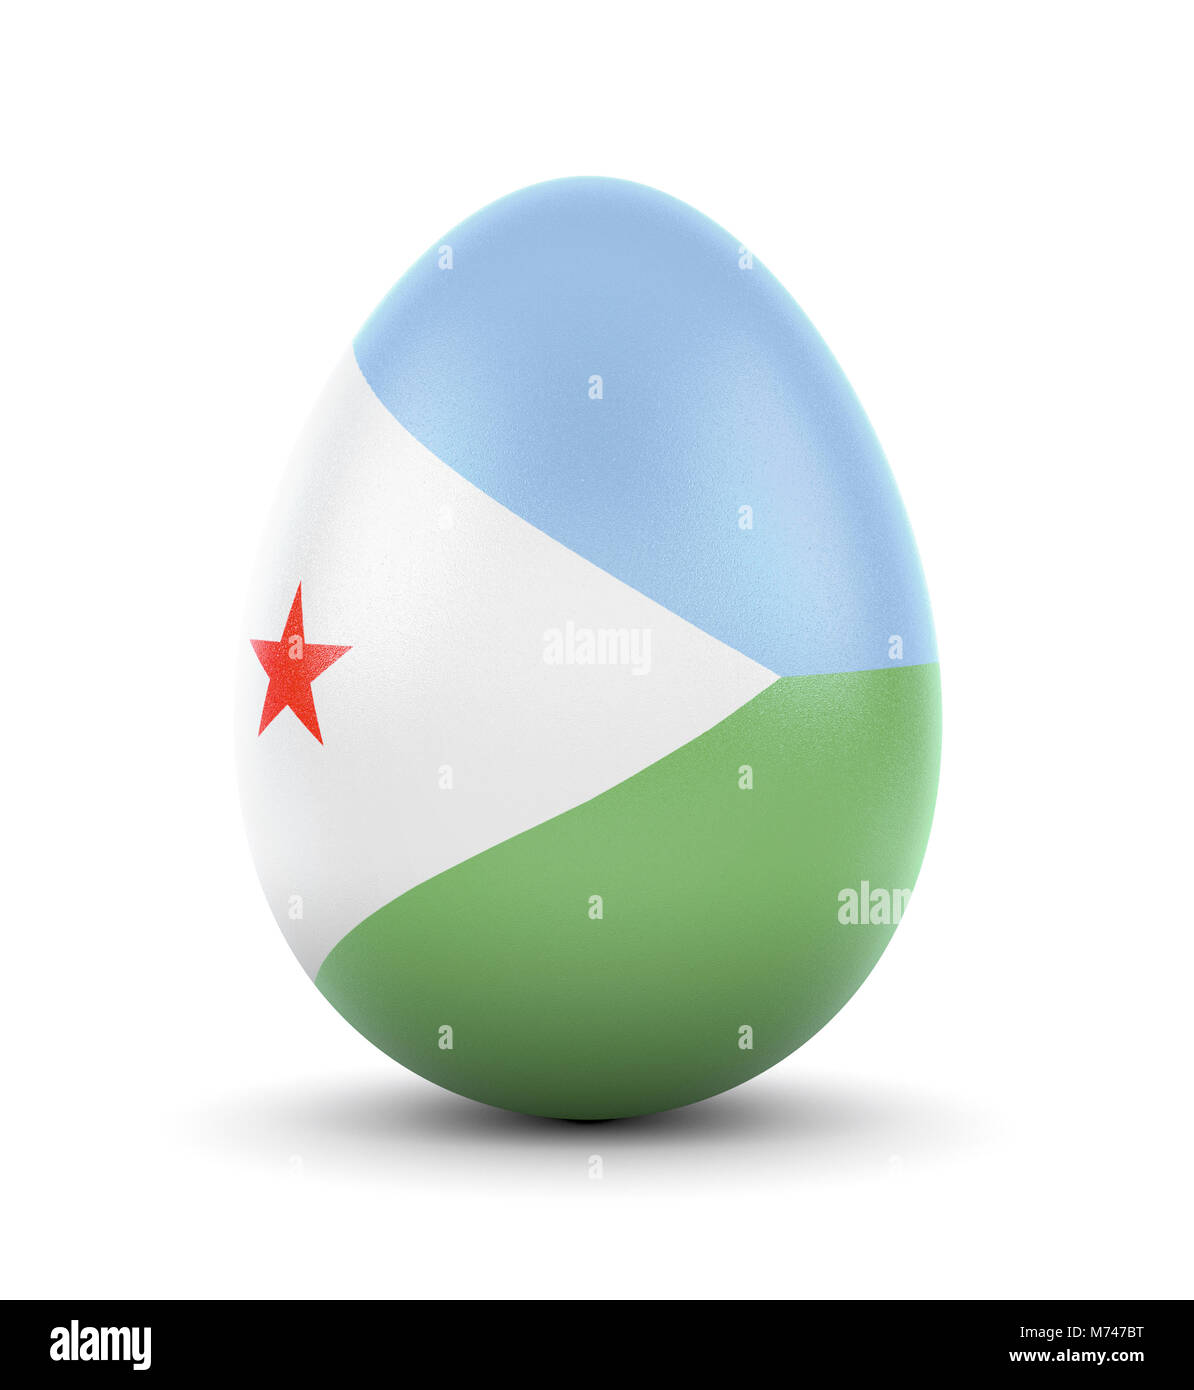 High quality realistic rendering of an glossy egg with the flag of Djibouti.(series) Stock Photo